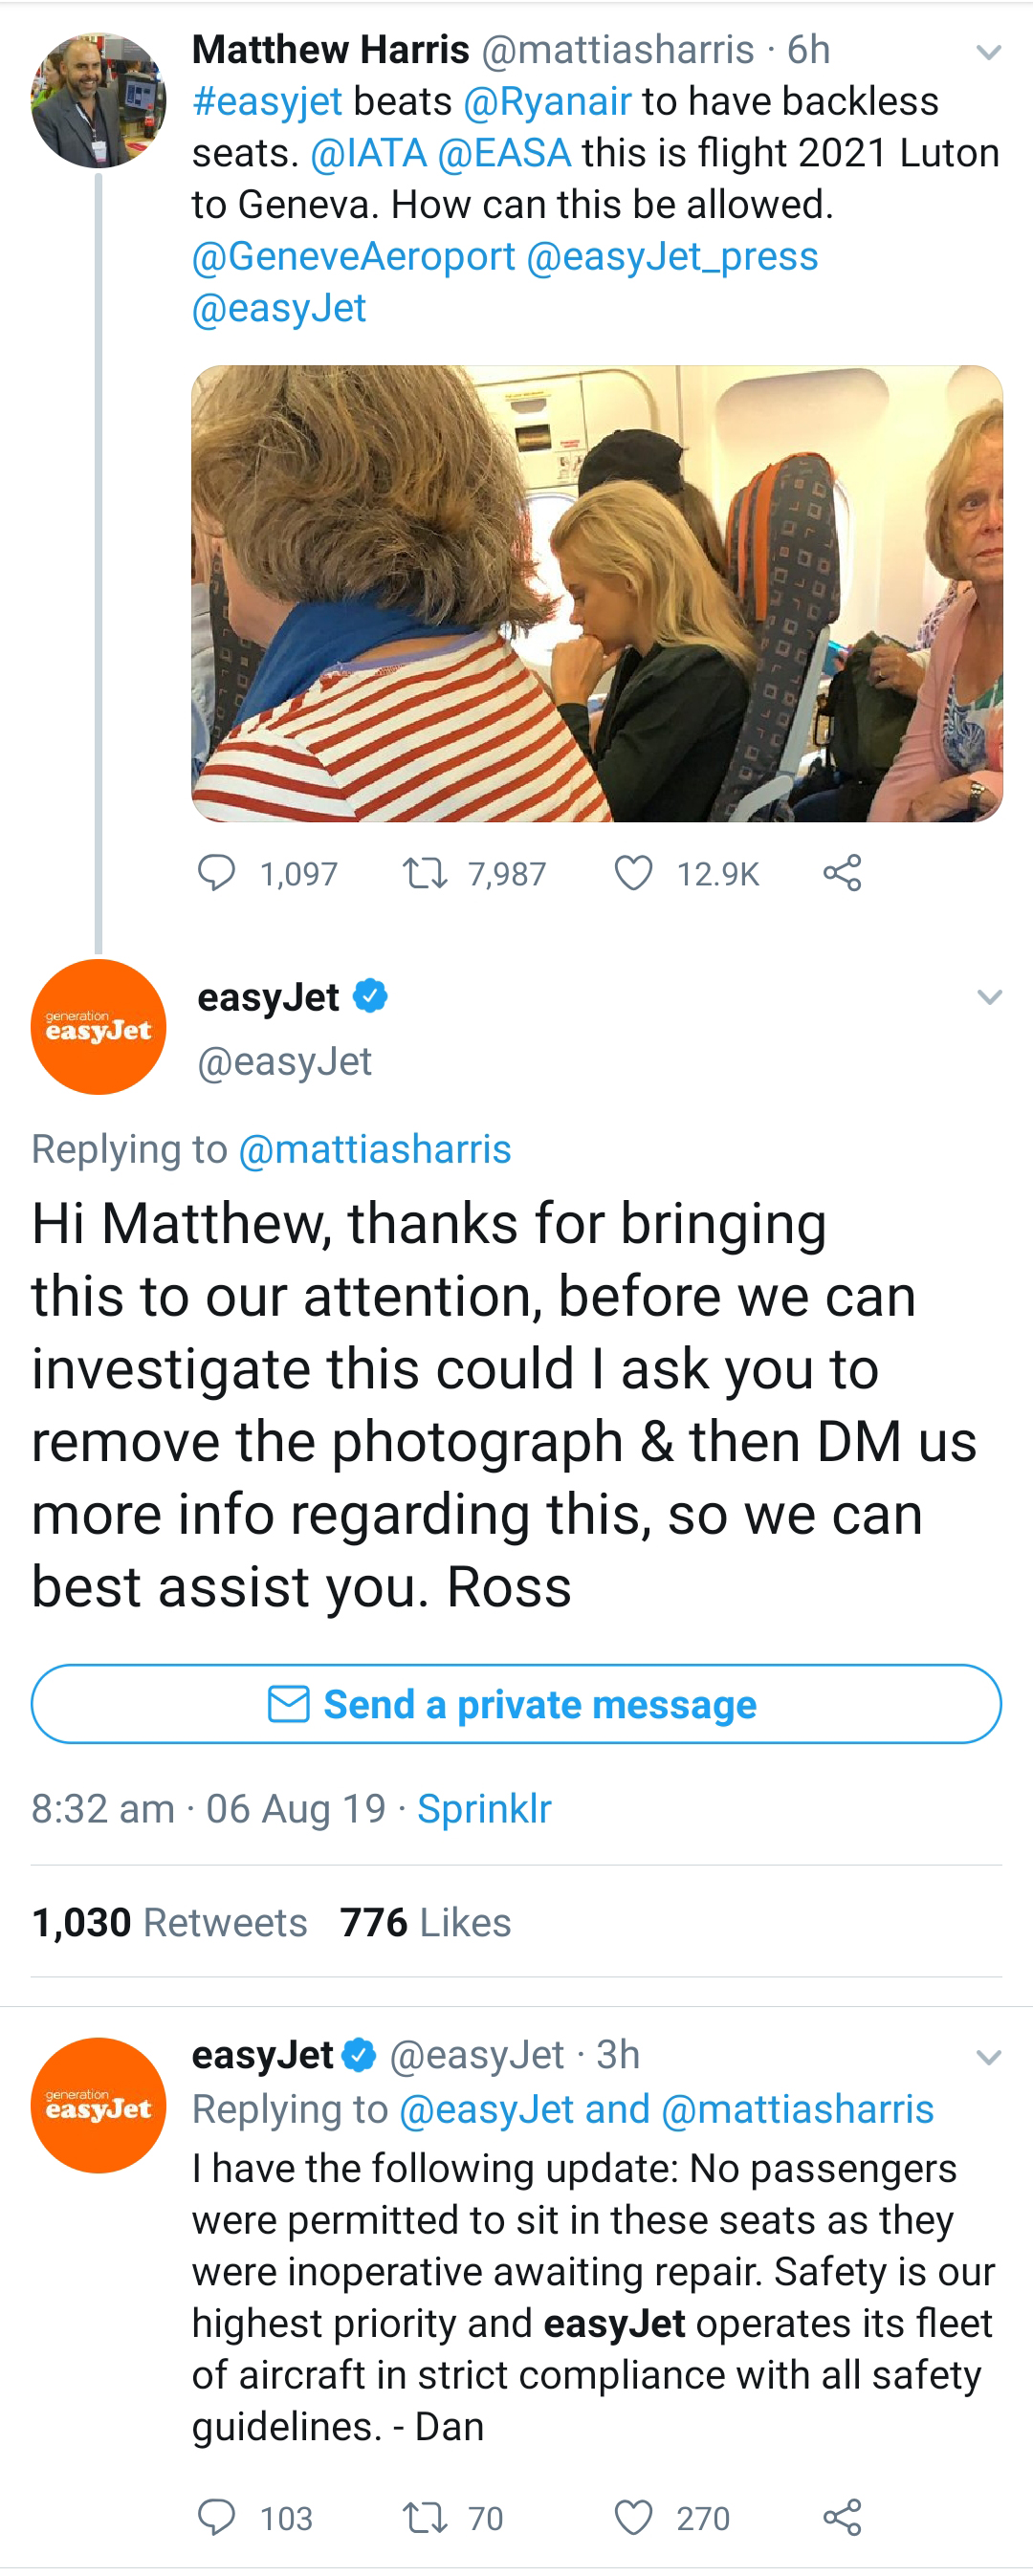 Screenshots from EasyJet's Twitter feed